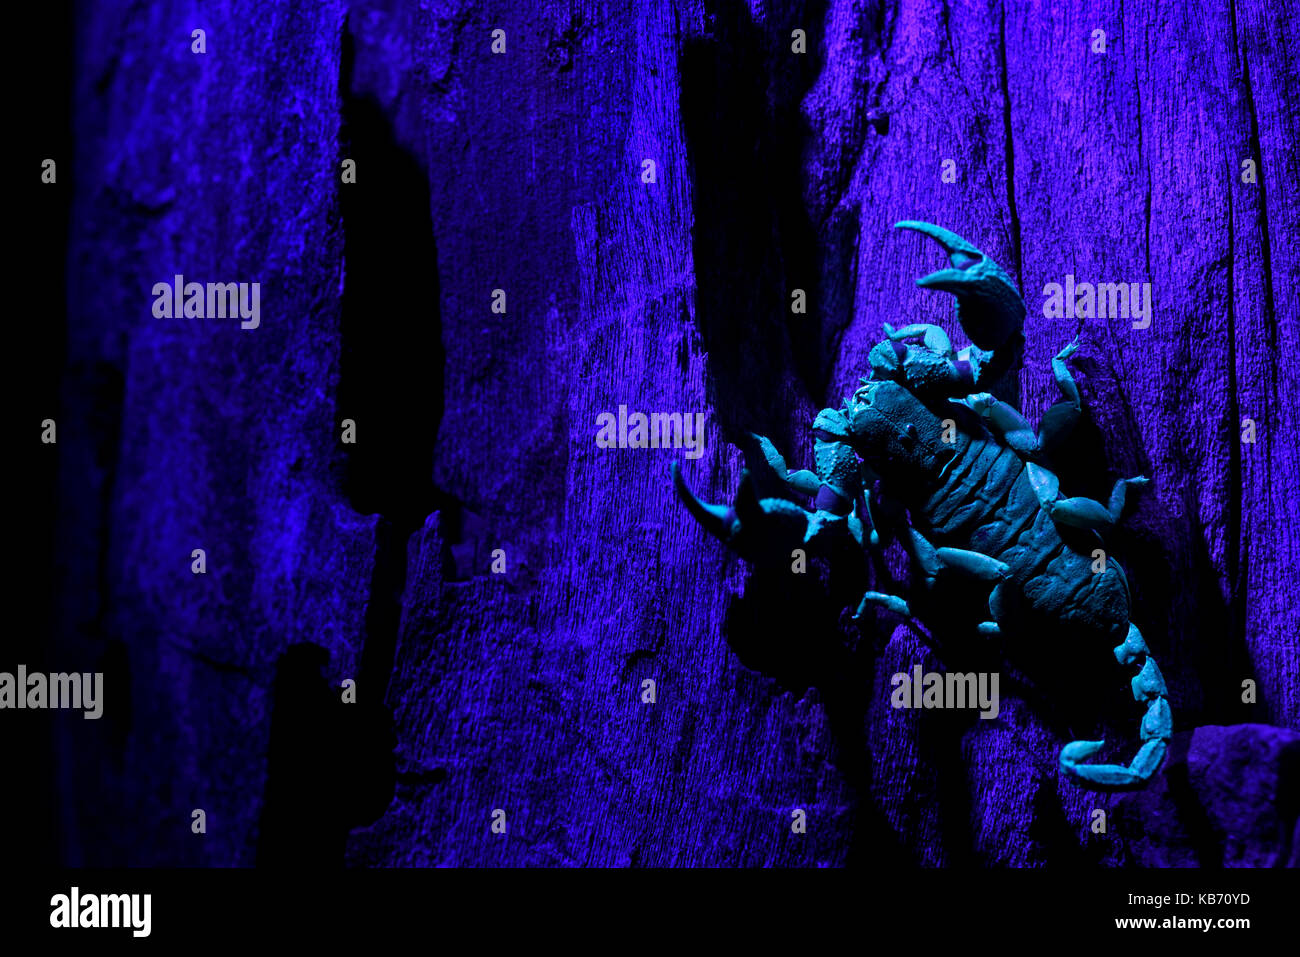 South African Scorpion (Opisthacanthus asper) illuminated with ultraviolet lights, South Africa, Limpopo, Kruger - Stock Image